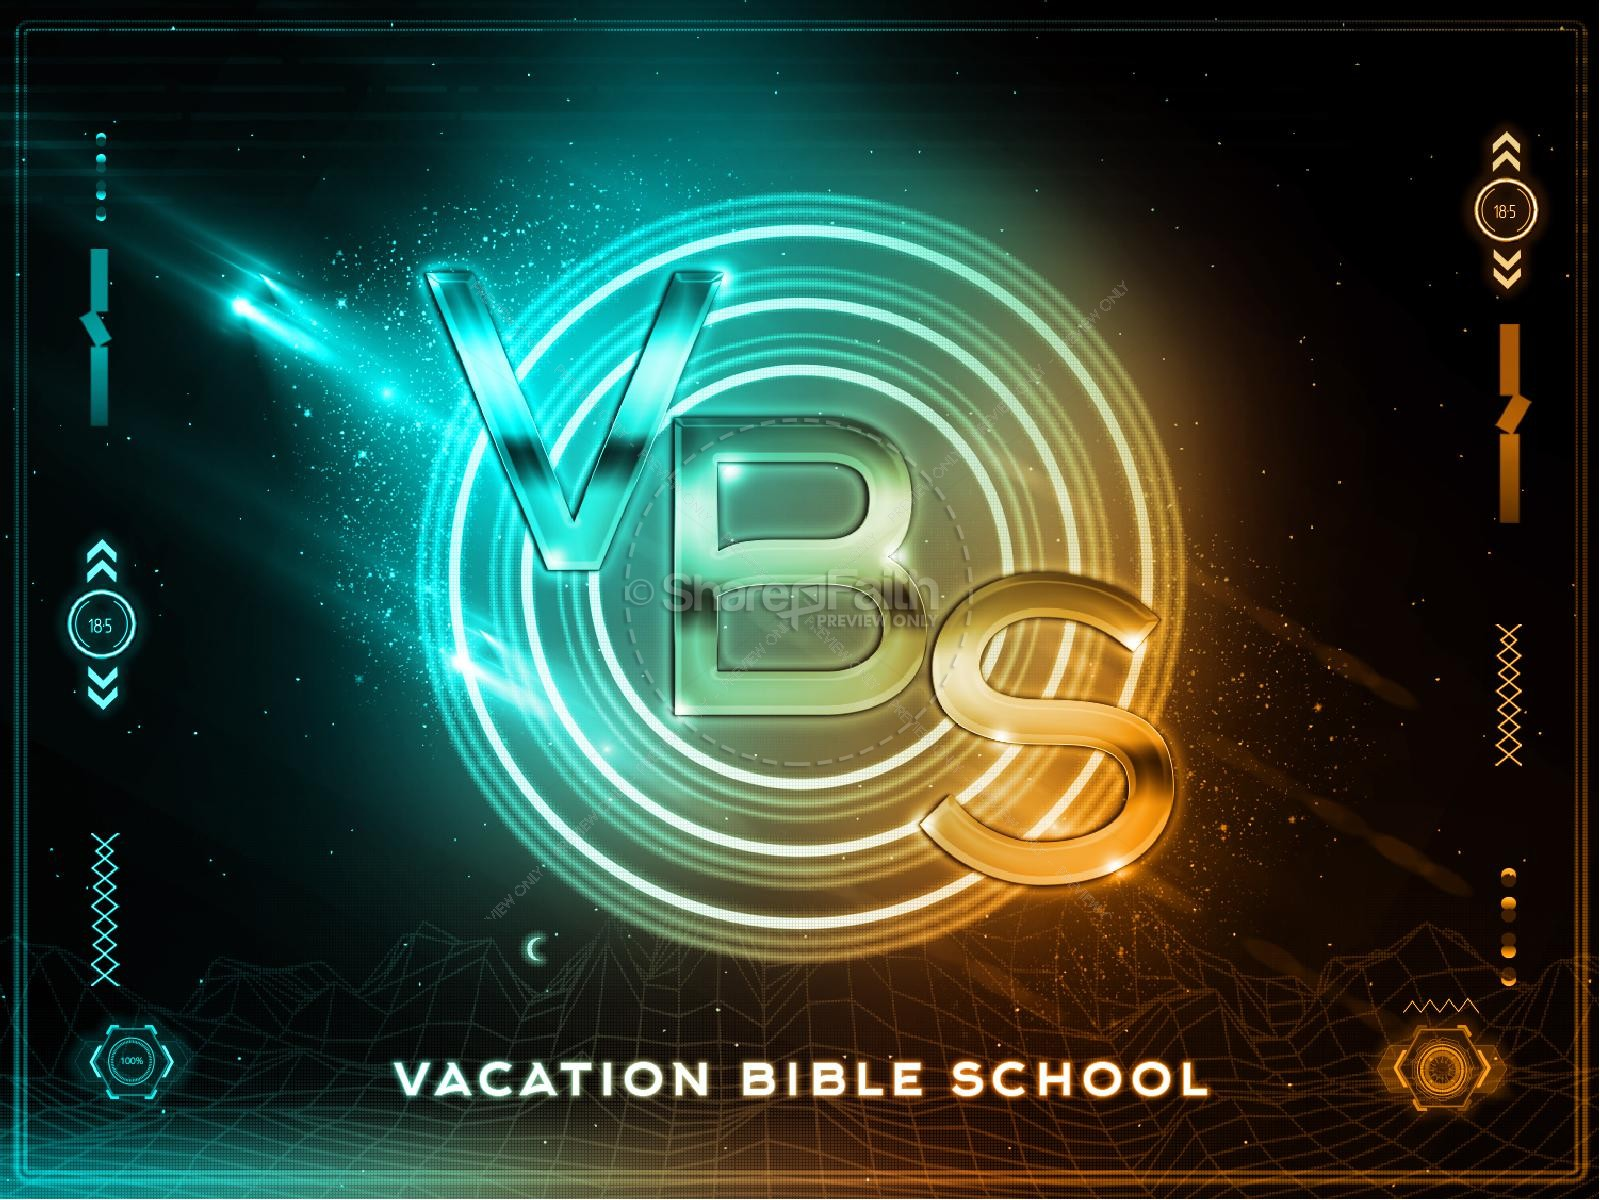 Vacation Bible School Title Graphic